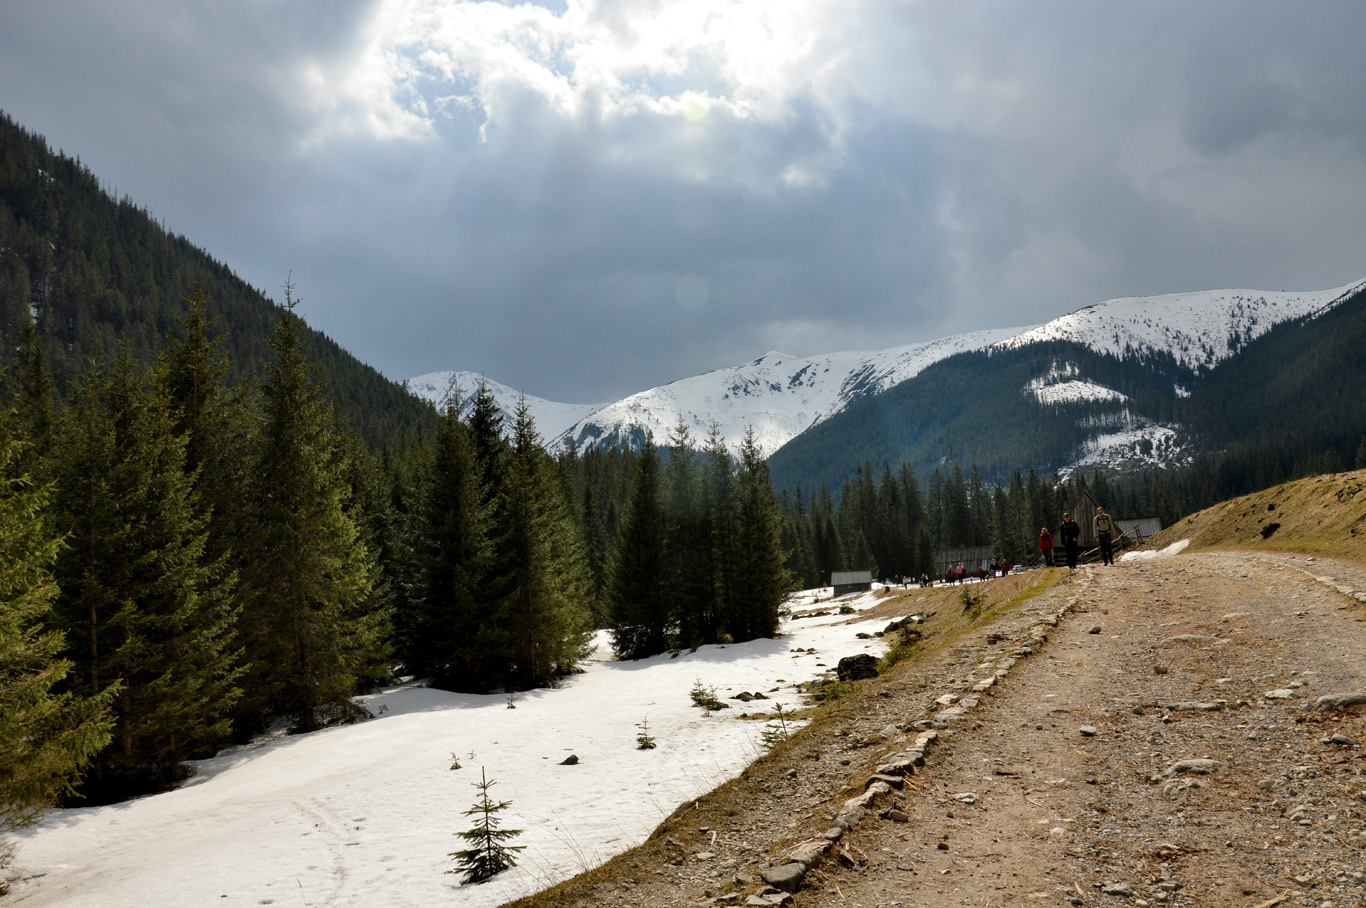 Dolina Chocholowska - near the forest, there was still a lot of snow